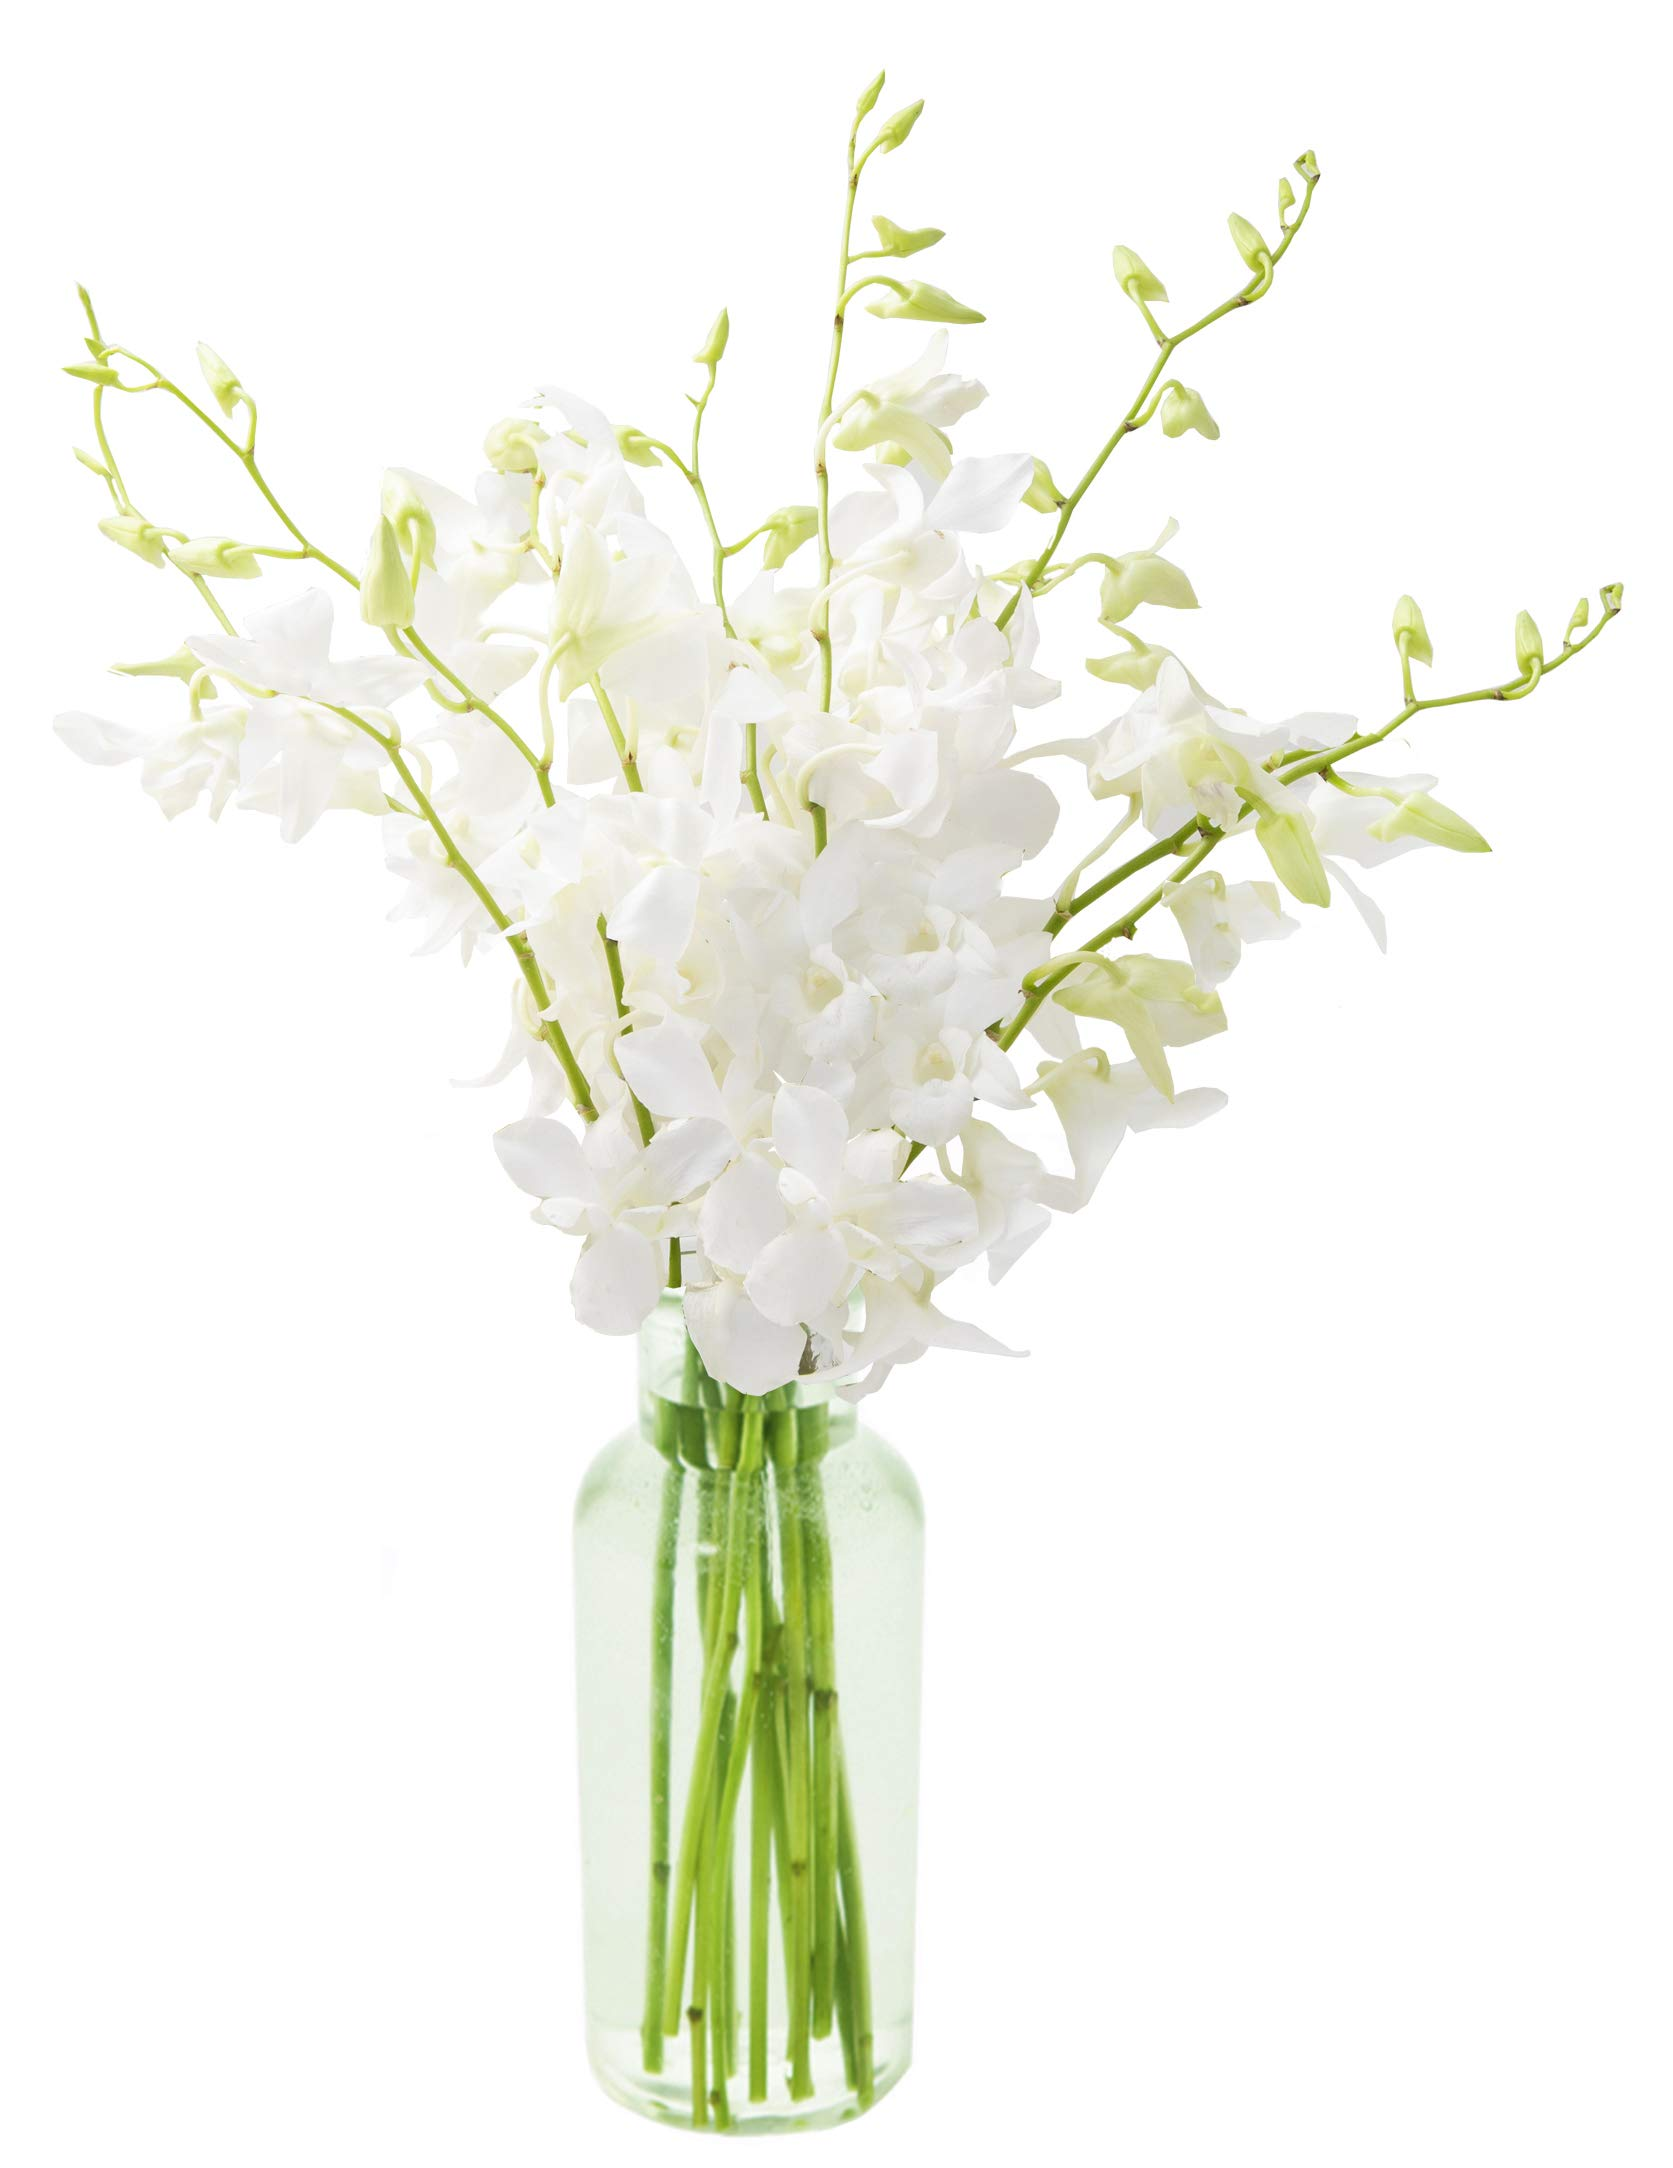 KaBloom Exotic Perla White Orchid Bouquet of White Orchids from Thailand with Vase